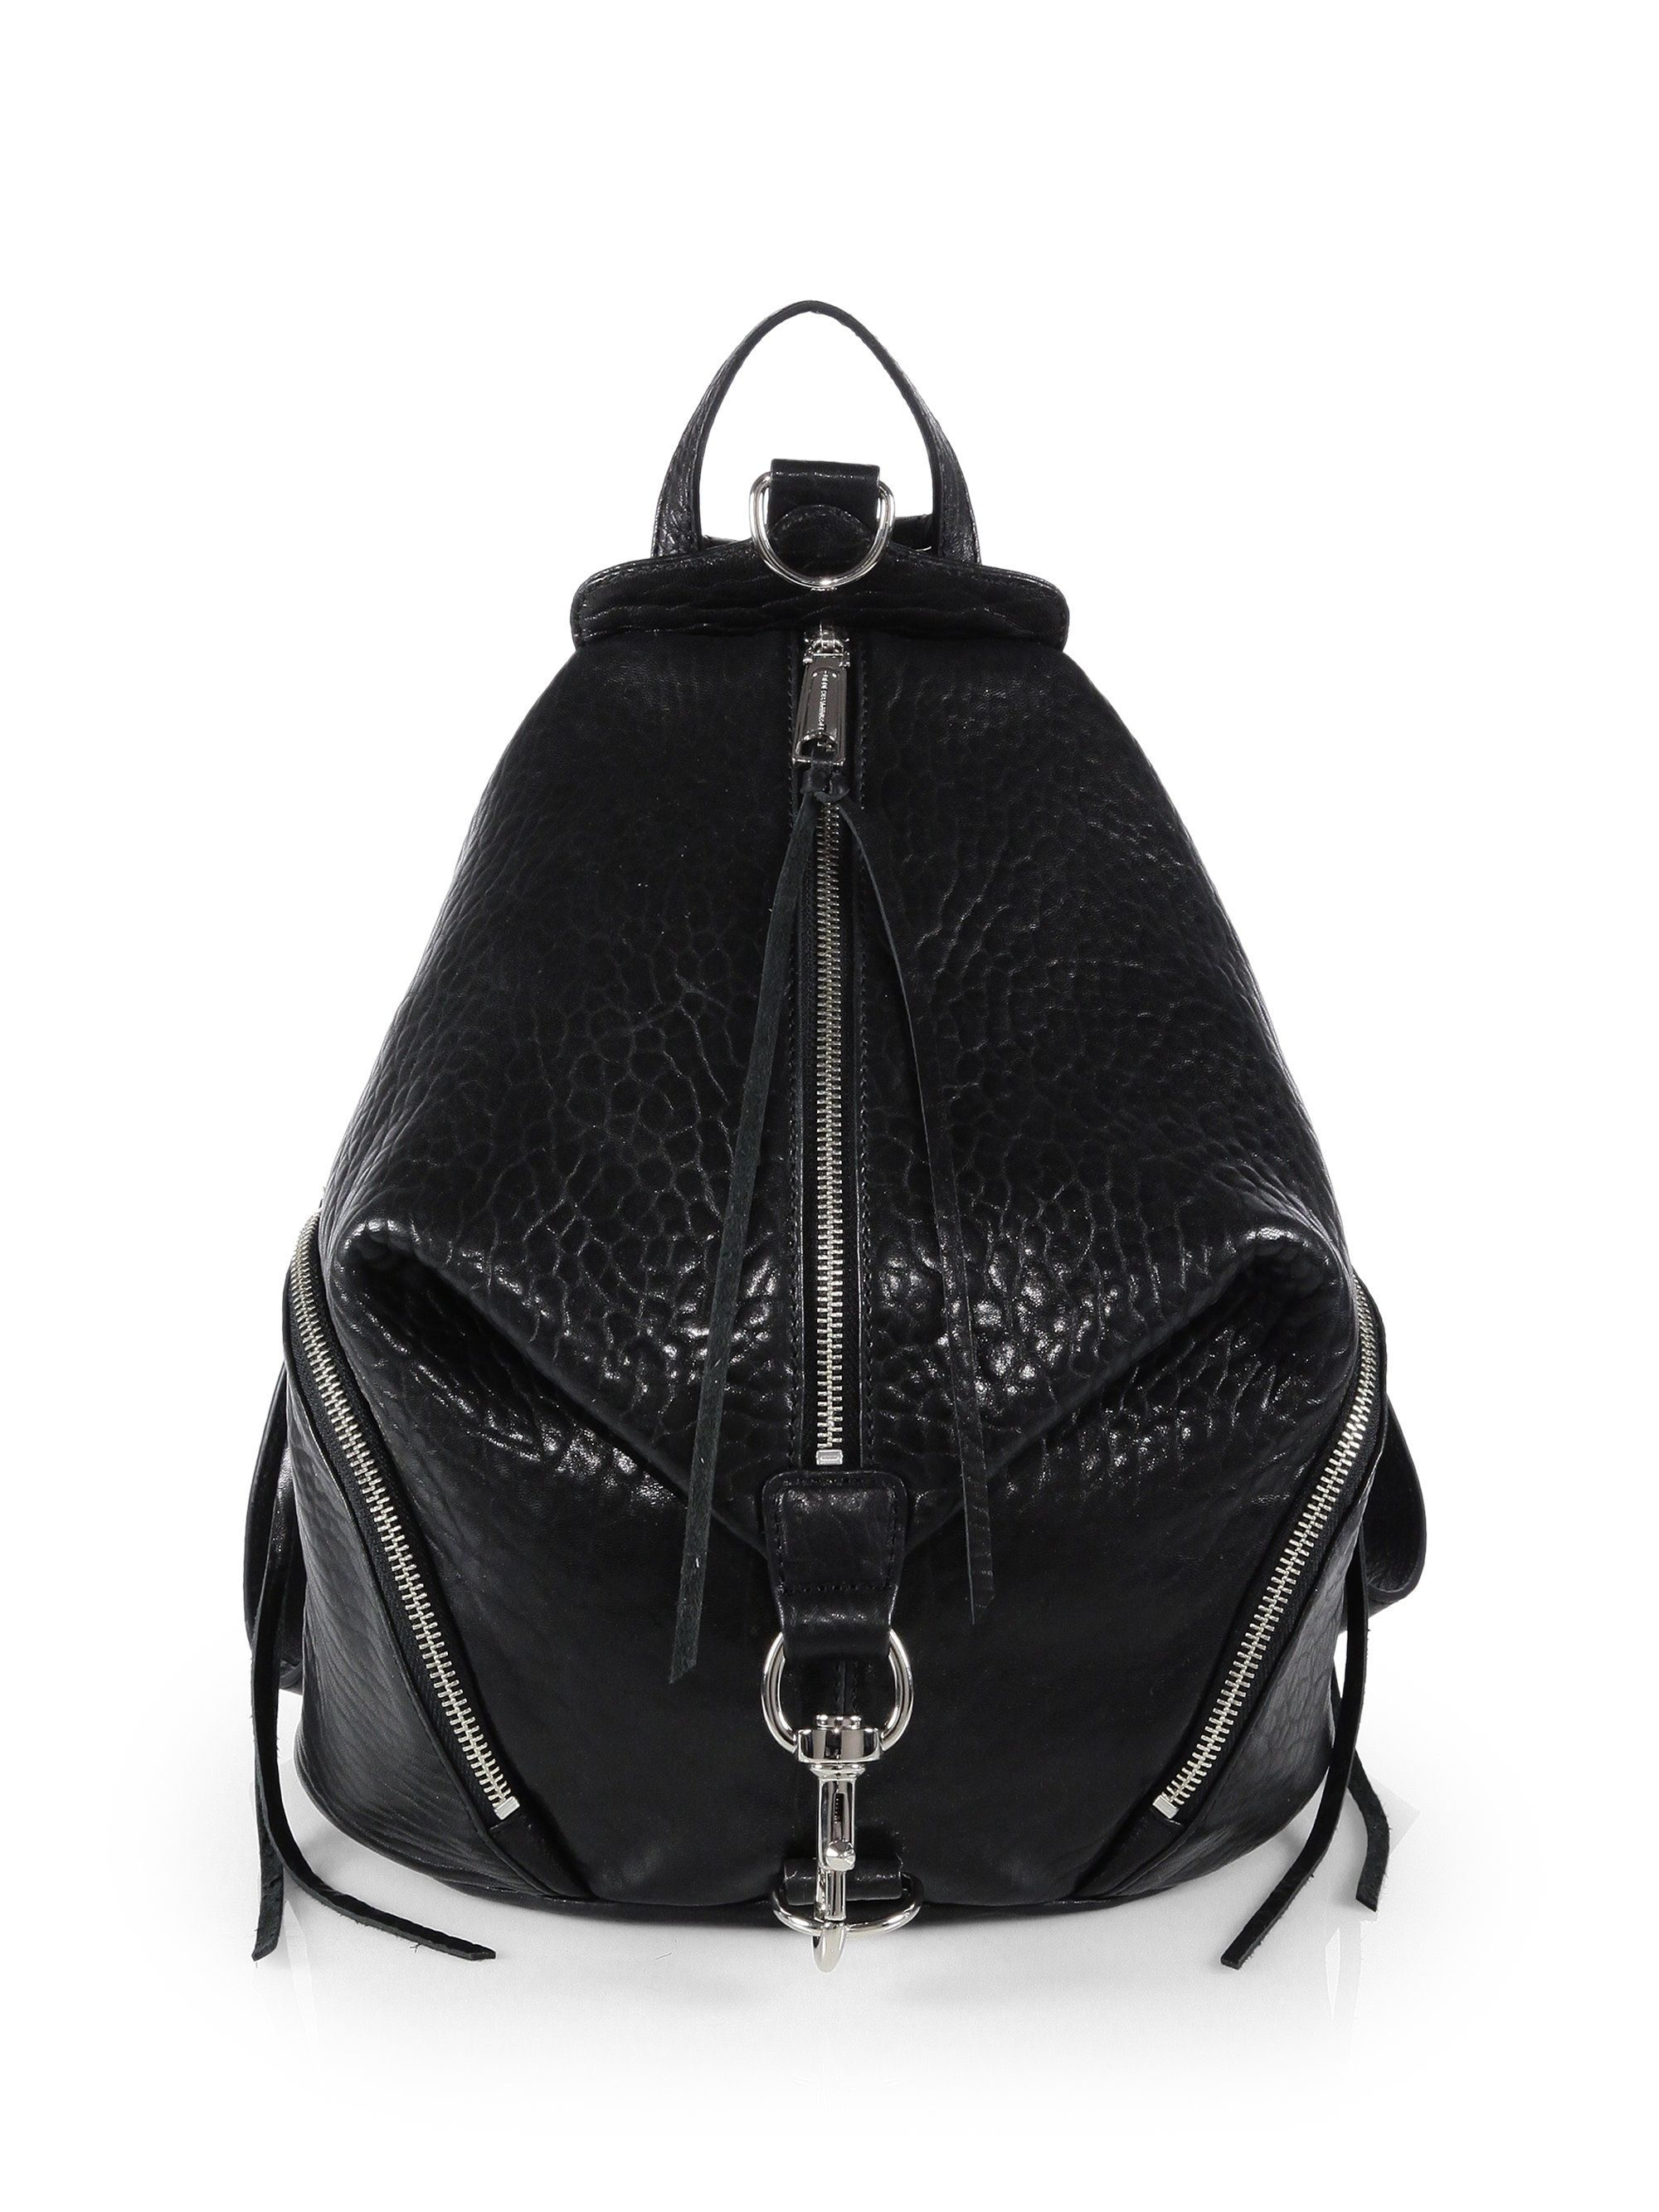 fc77bfde7 Women's Julian Leather Backpack - Black in 2019 | Accessories ...